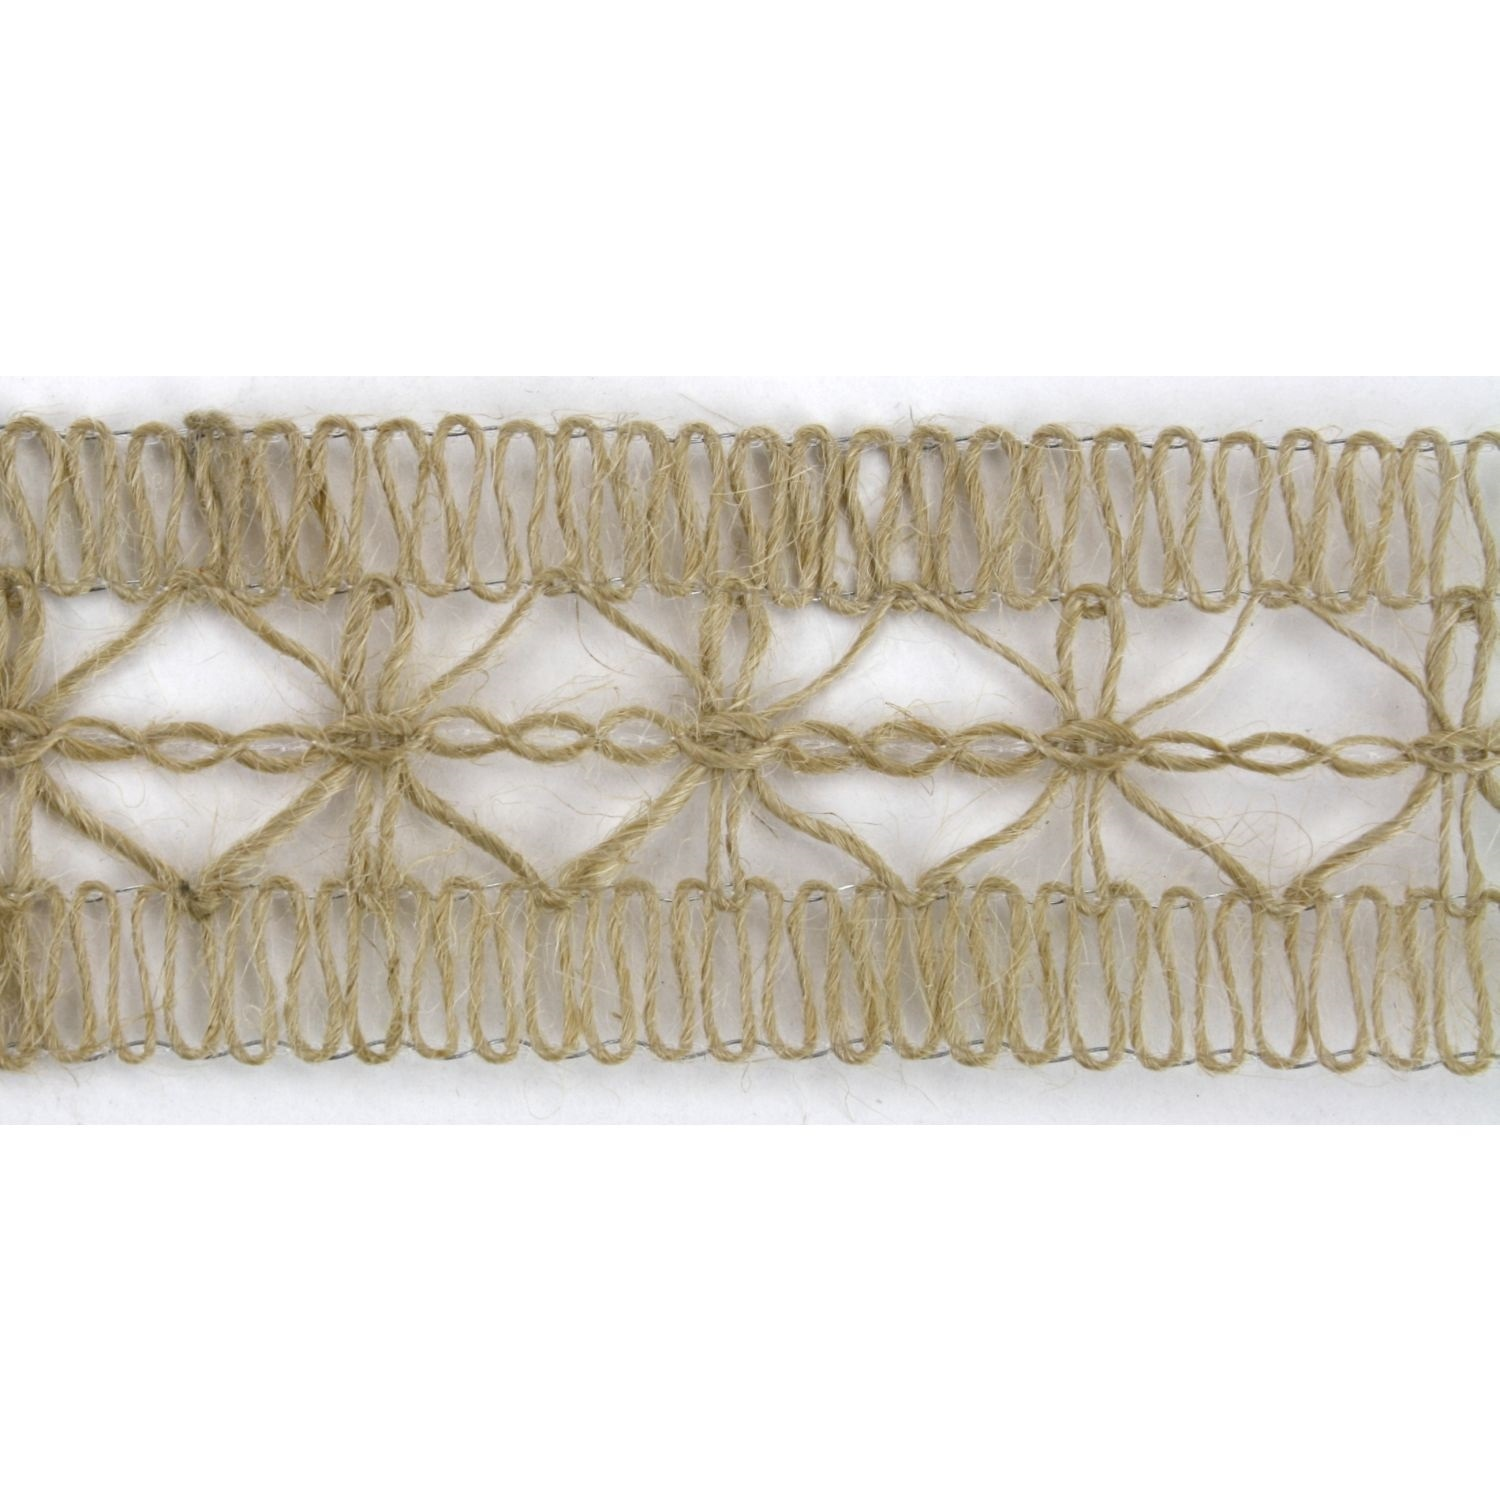 "1-5/8"" Net Burlap Ribbon Design 10 Yards"